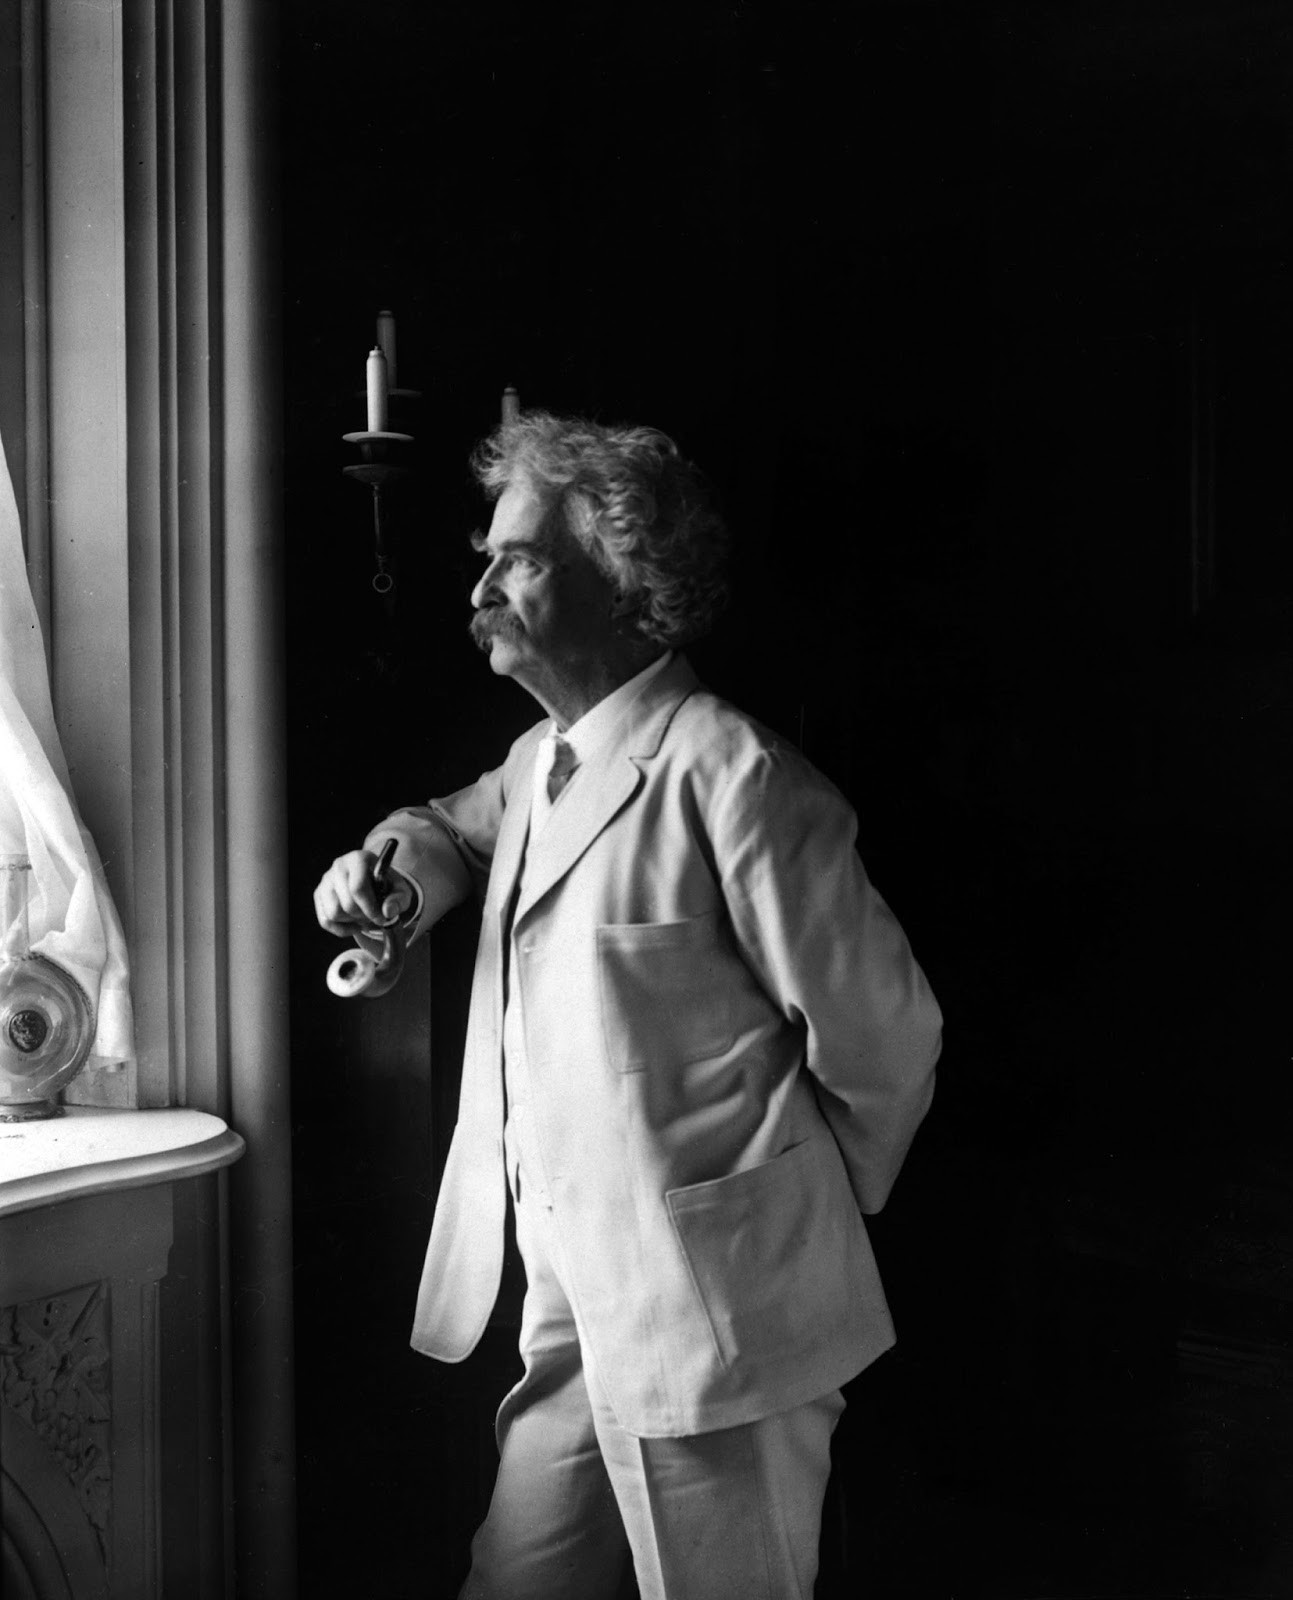 Mark Twain: Raised in a House of Fun